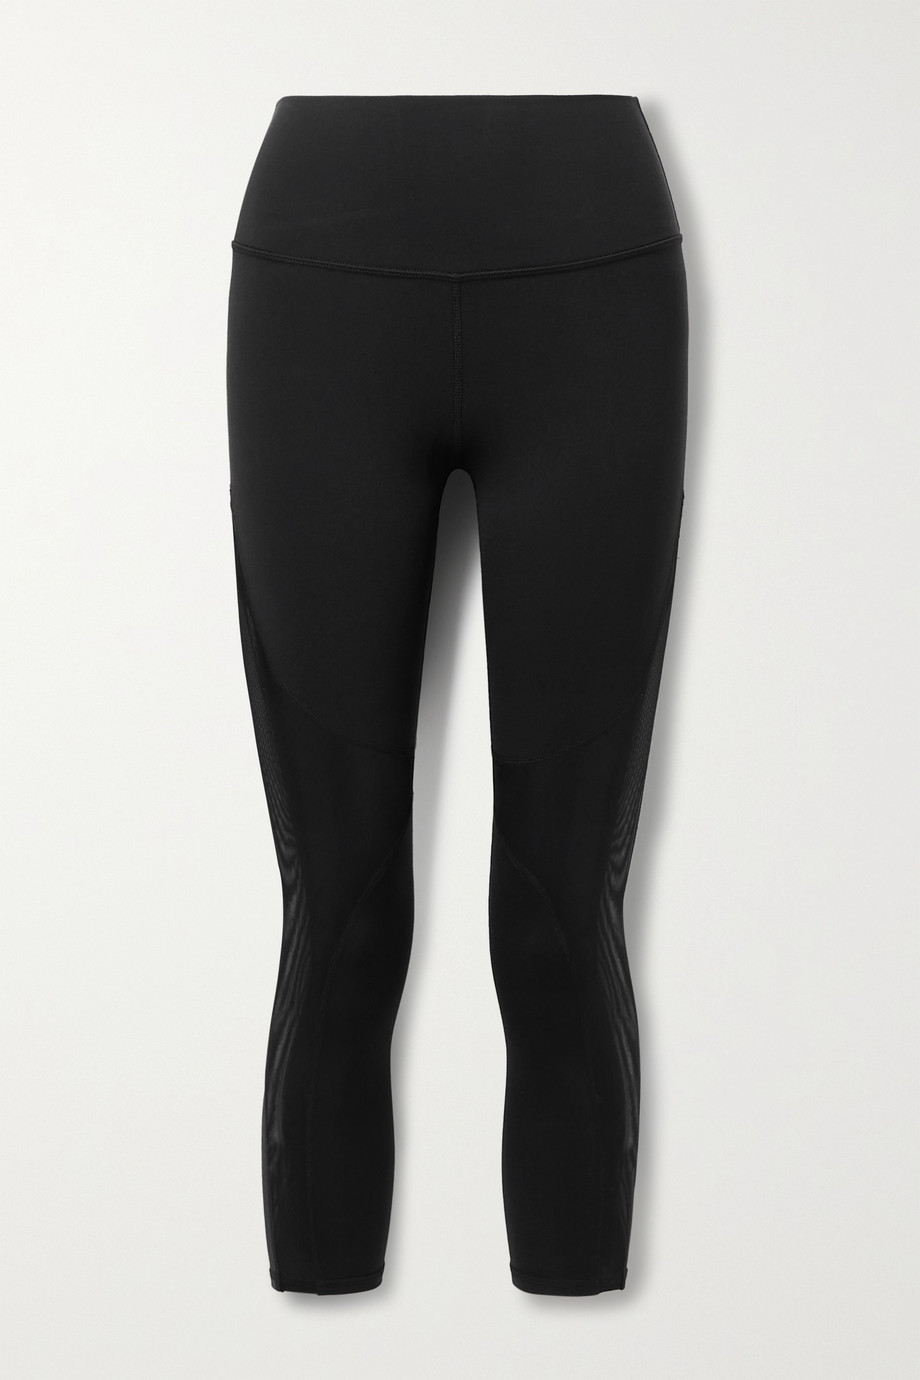 ALO YOGA Coast cropped mesh-trimmed stretch leggings